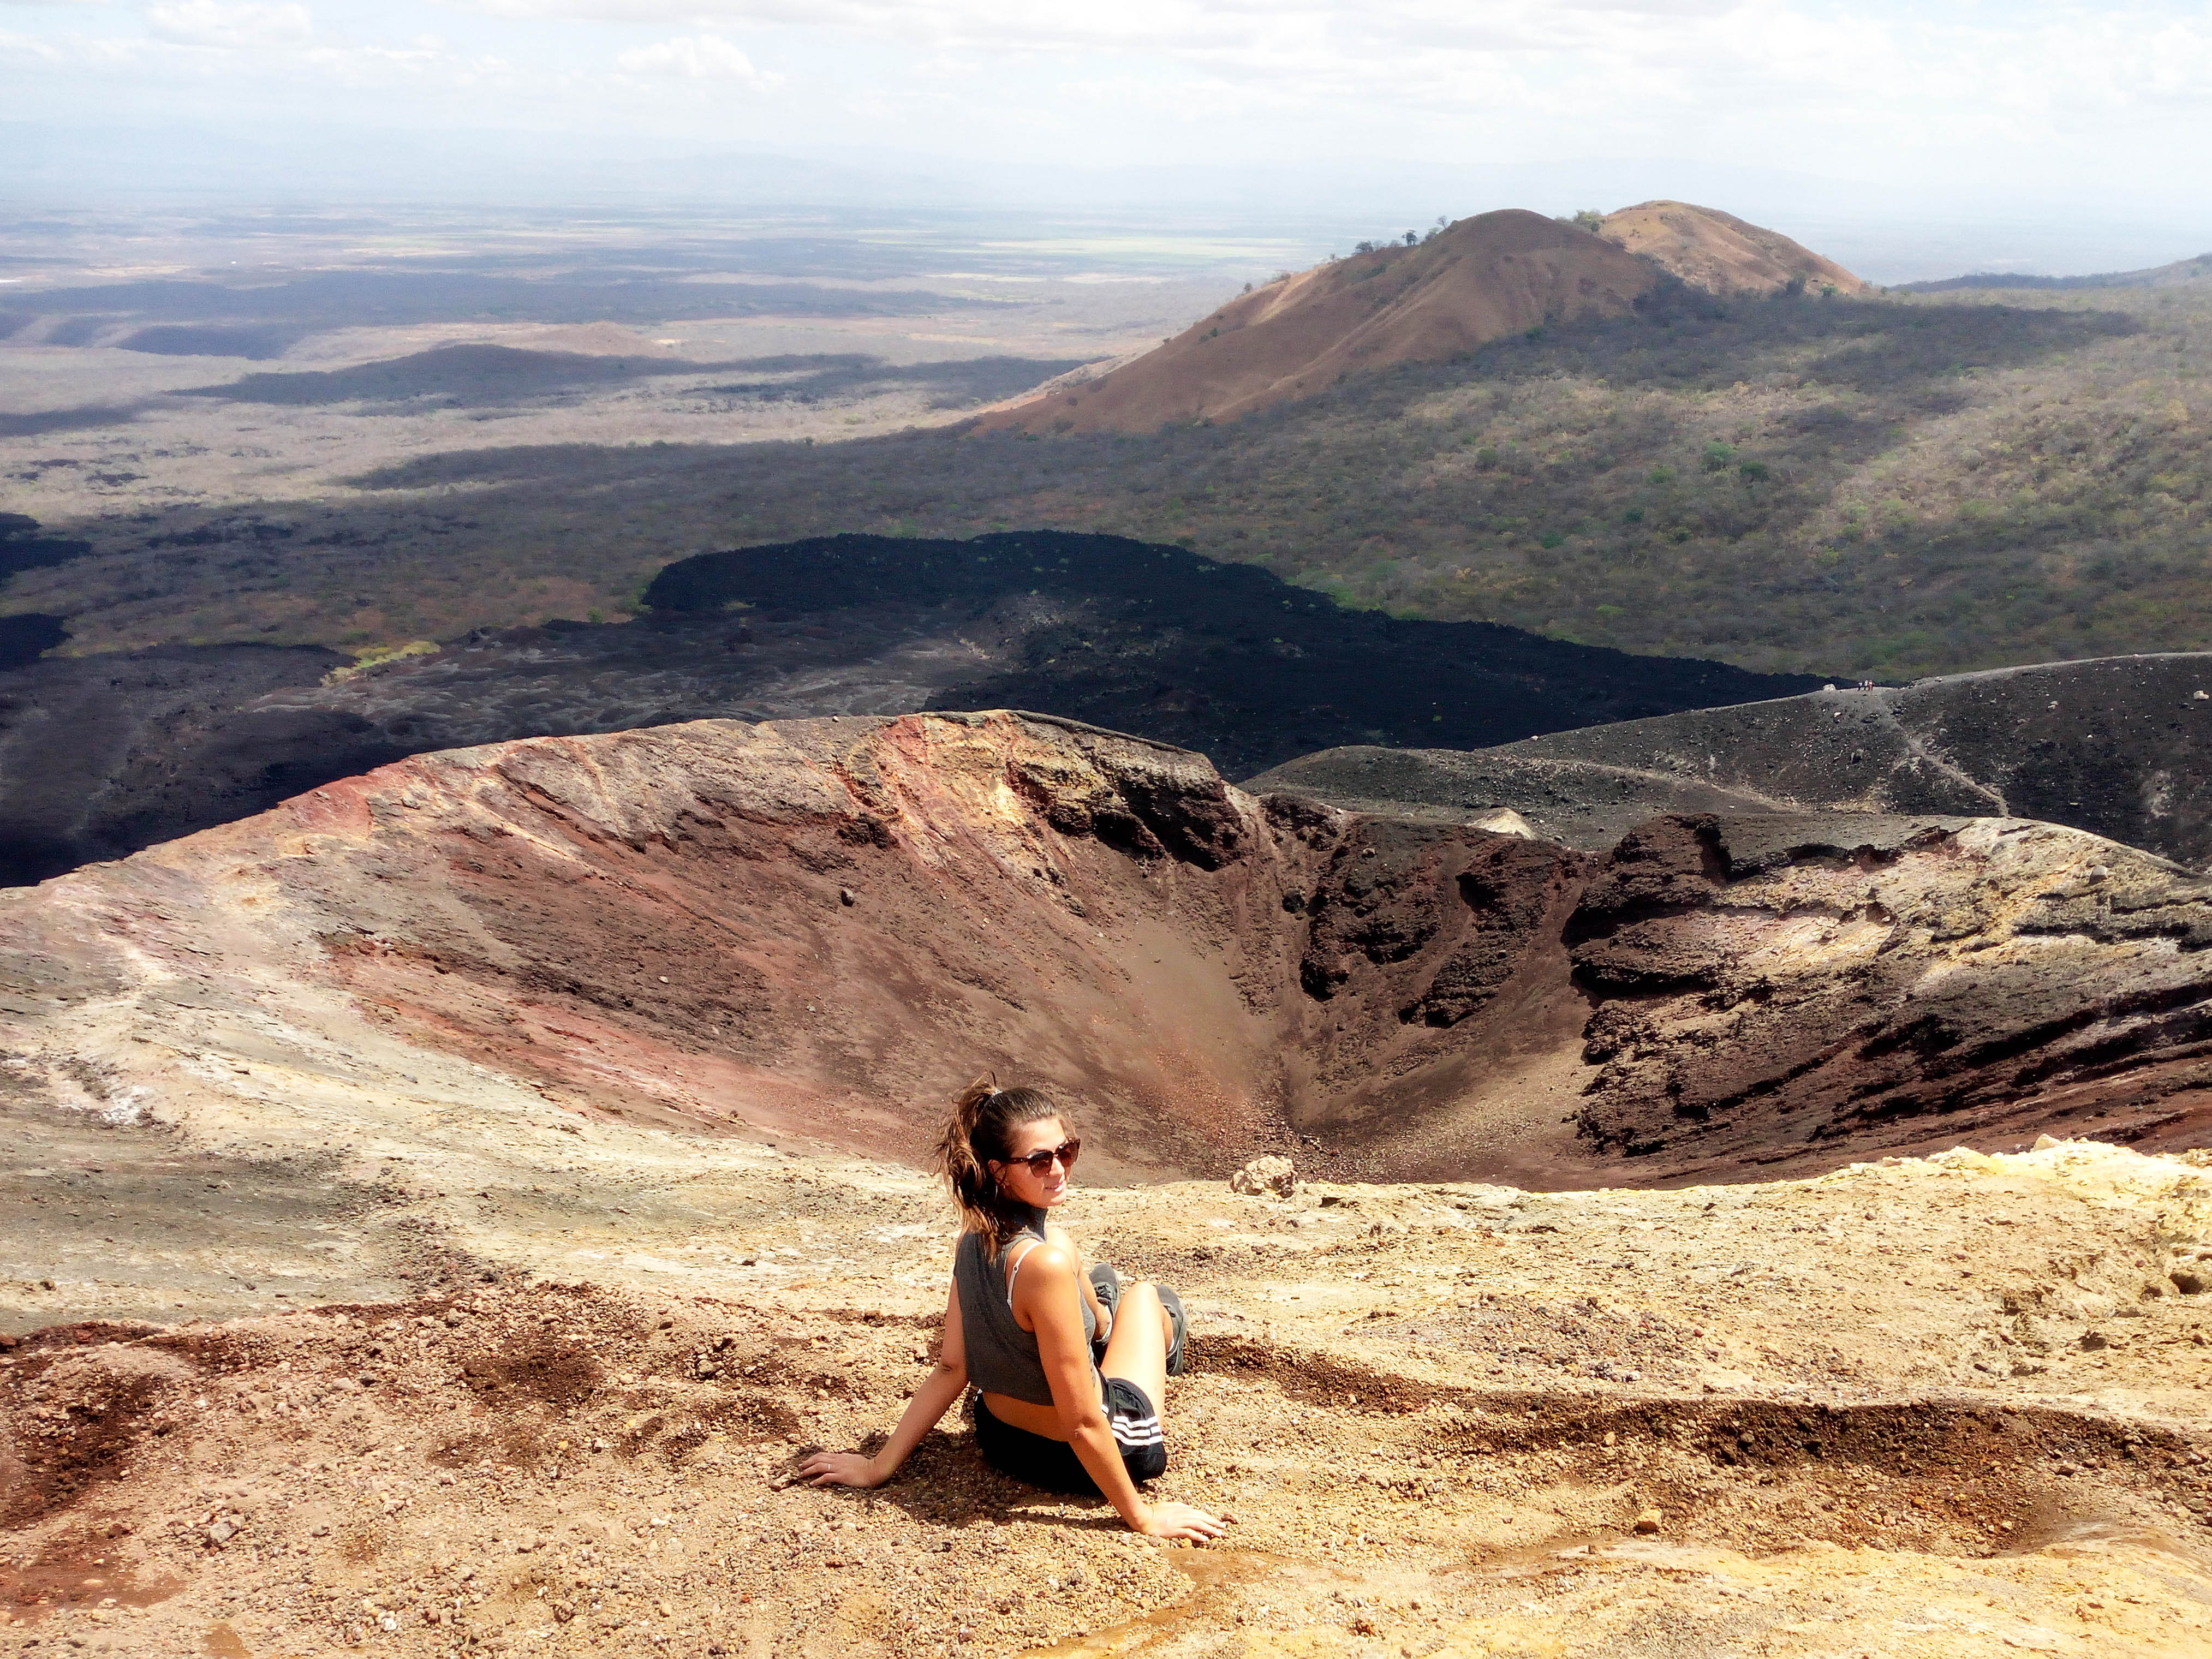 On top of Cerro Negro! Two things not to miss out on in Leon, walk on top of a white cathedral and slide down the nearby volcano. Both, in one day if you want to.